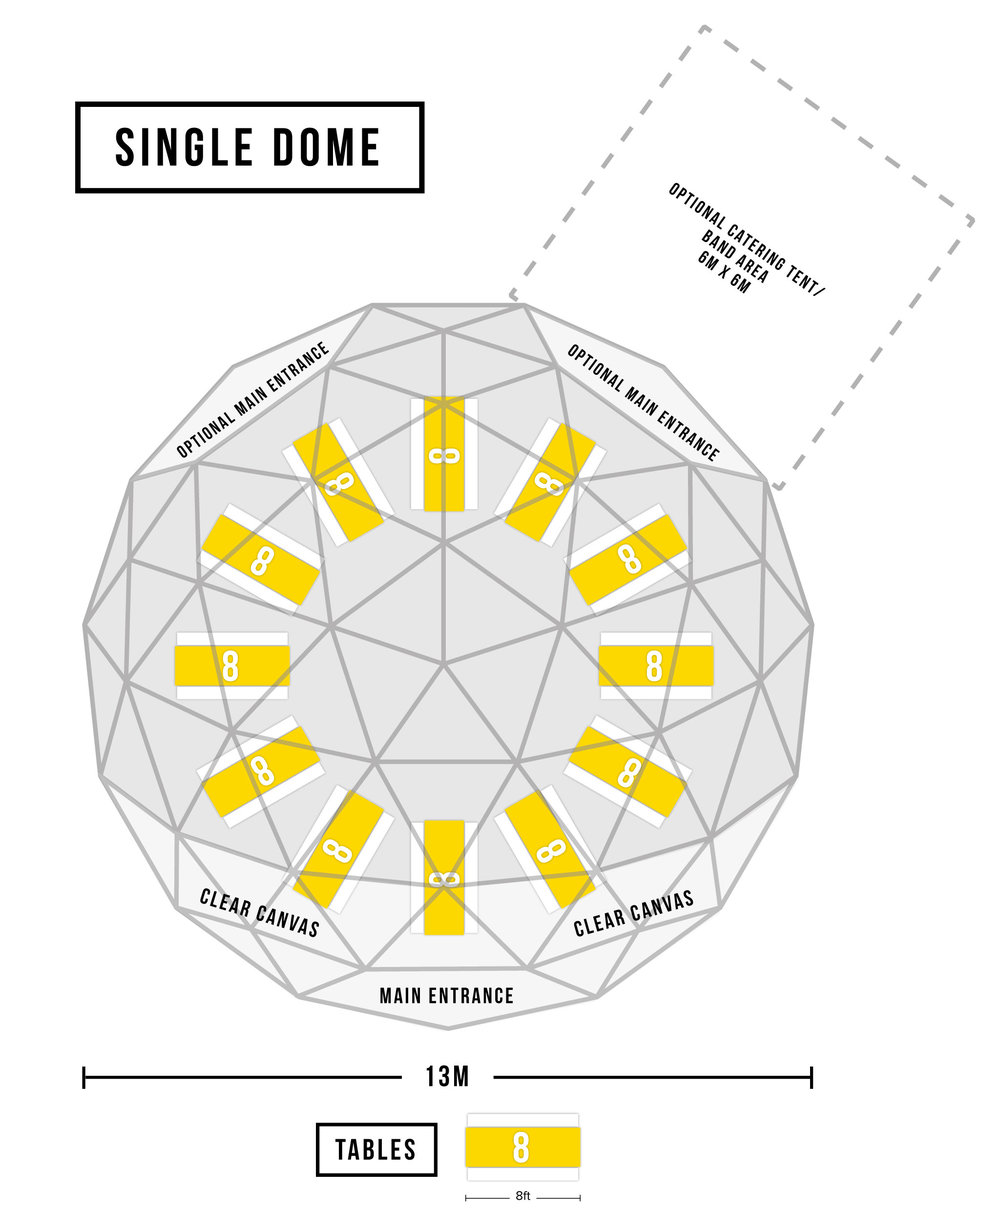 single dome floorplan 2